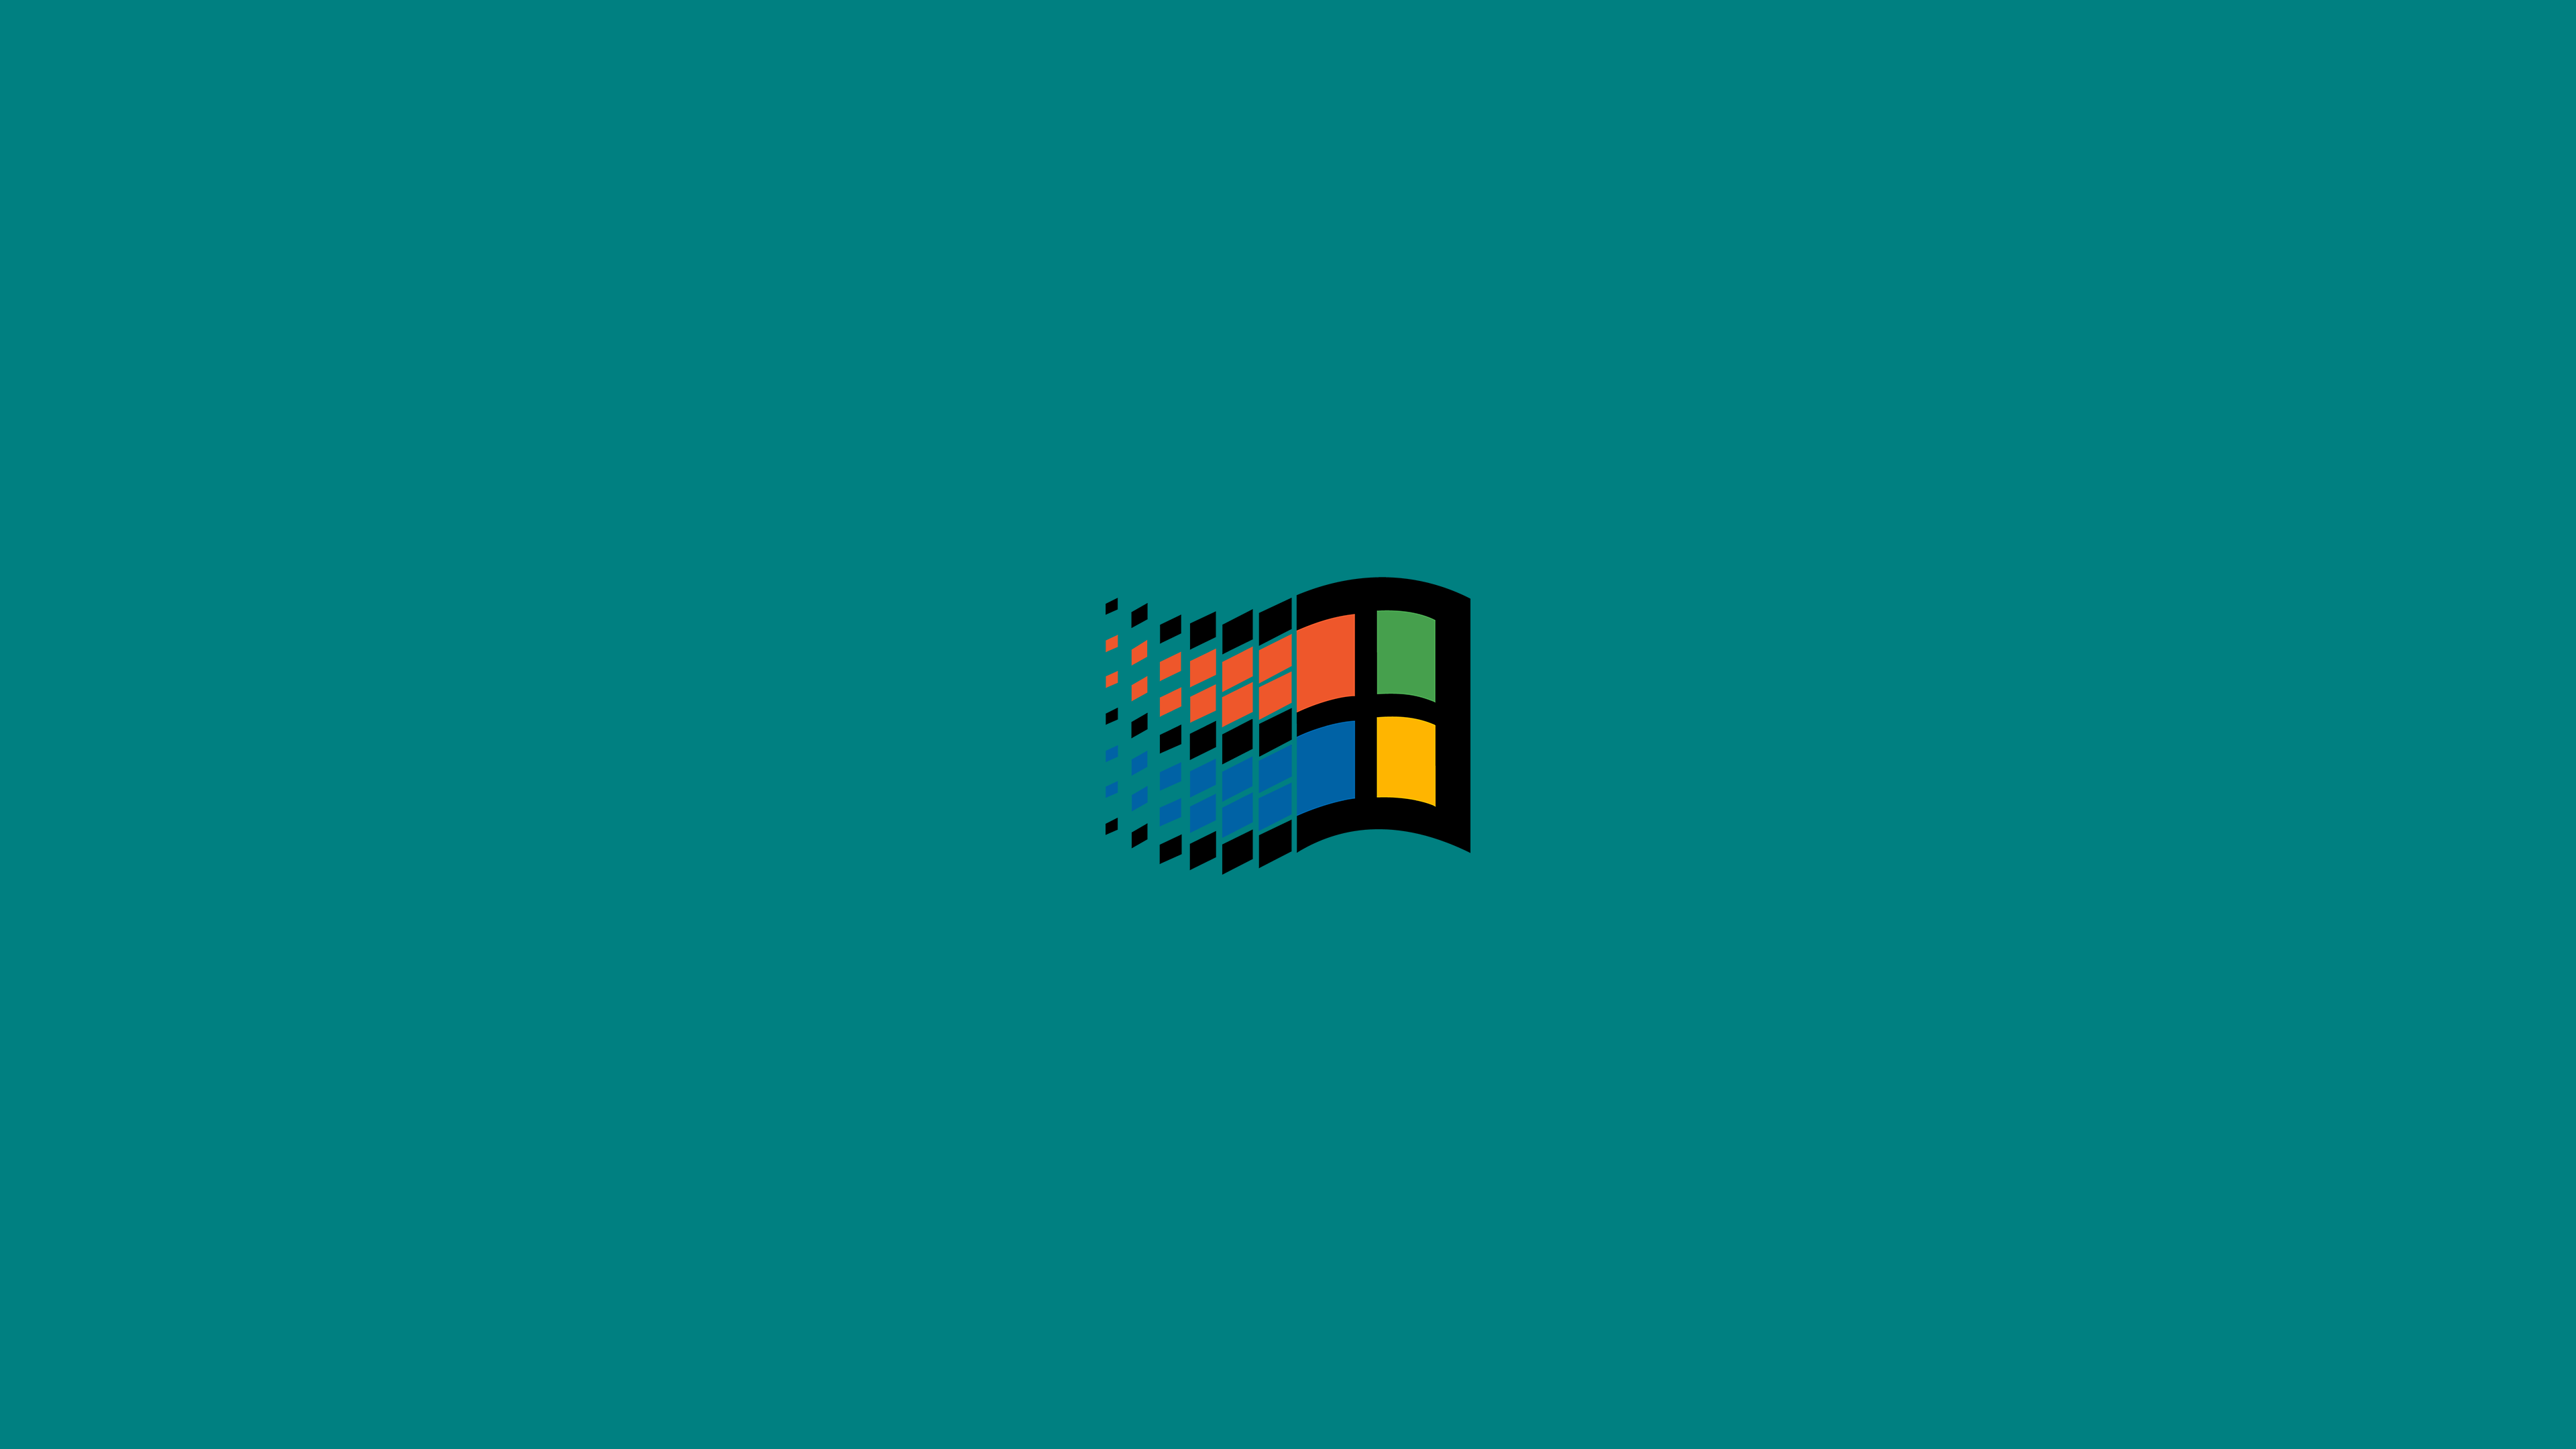 logo windows retro